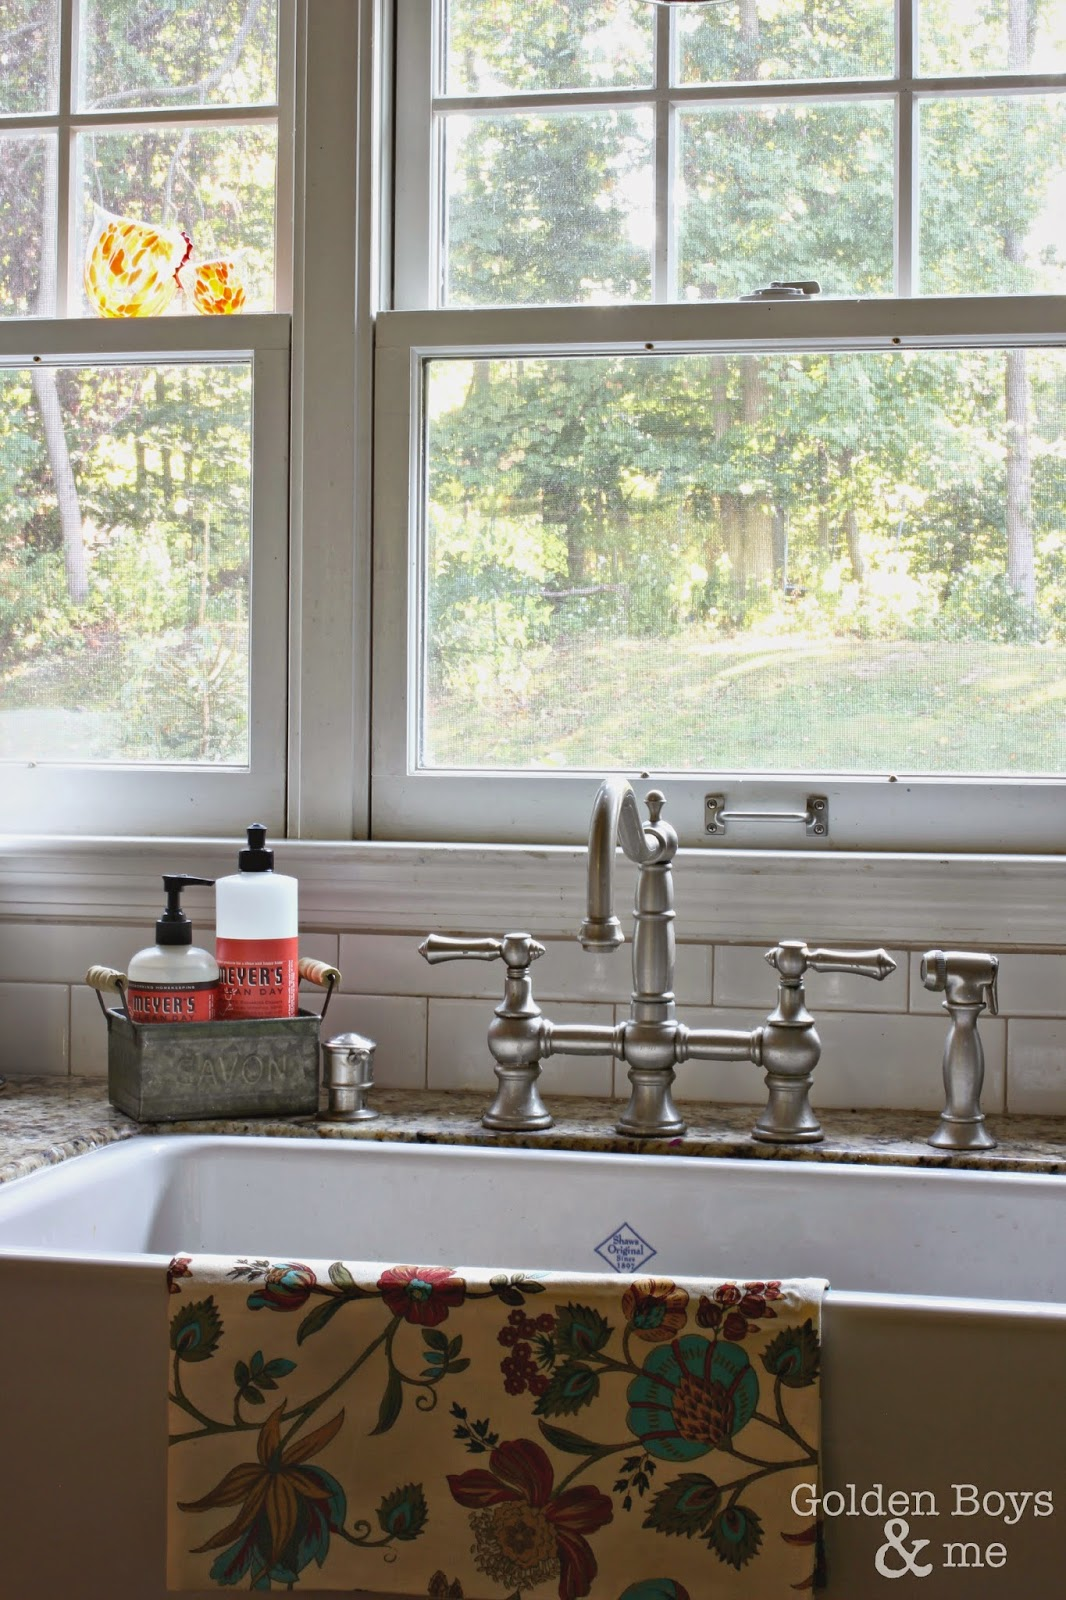 Shaw's Original Farm house apron sink in fall decor kitchen-www.goldenboysandme.com